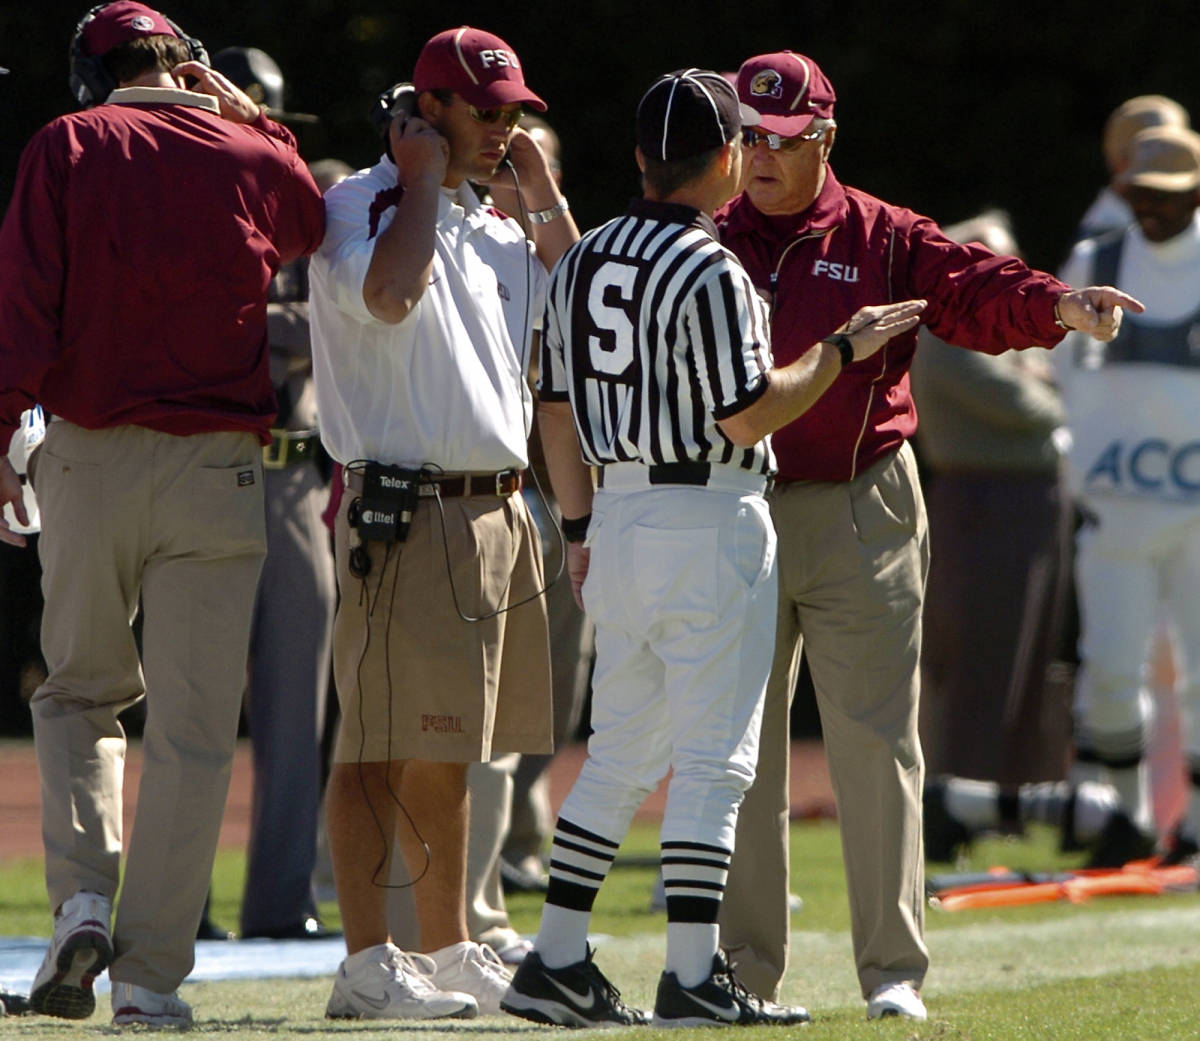 Florida State coach Bobby Bowden, right, discusses a call with side judge Mike Safrit during the first half of a college football game against Duke, Saturday, Oct. 14, 2006, in Durham, N.C. Florida State won 51-24. (AP Photo/Sara D. Davis)